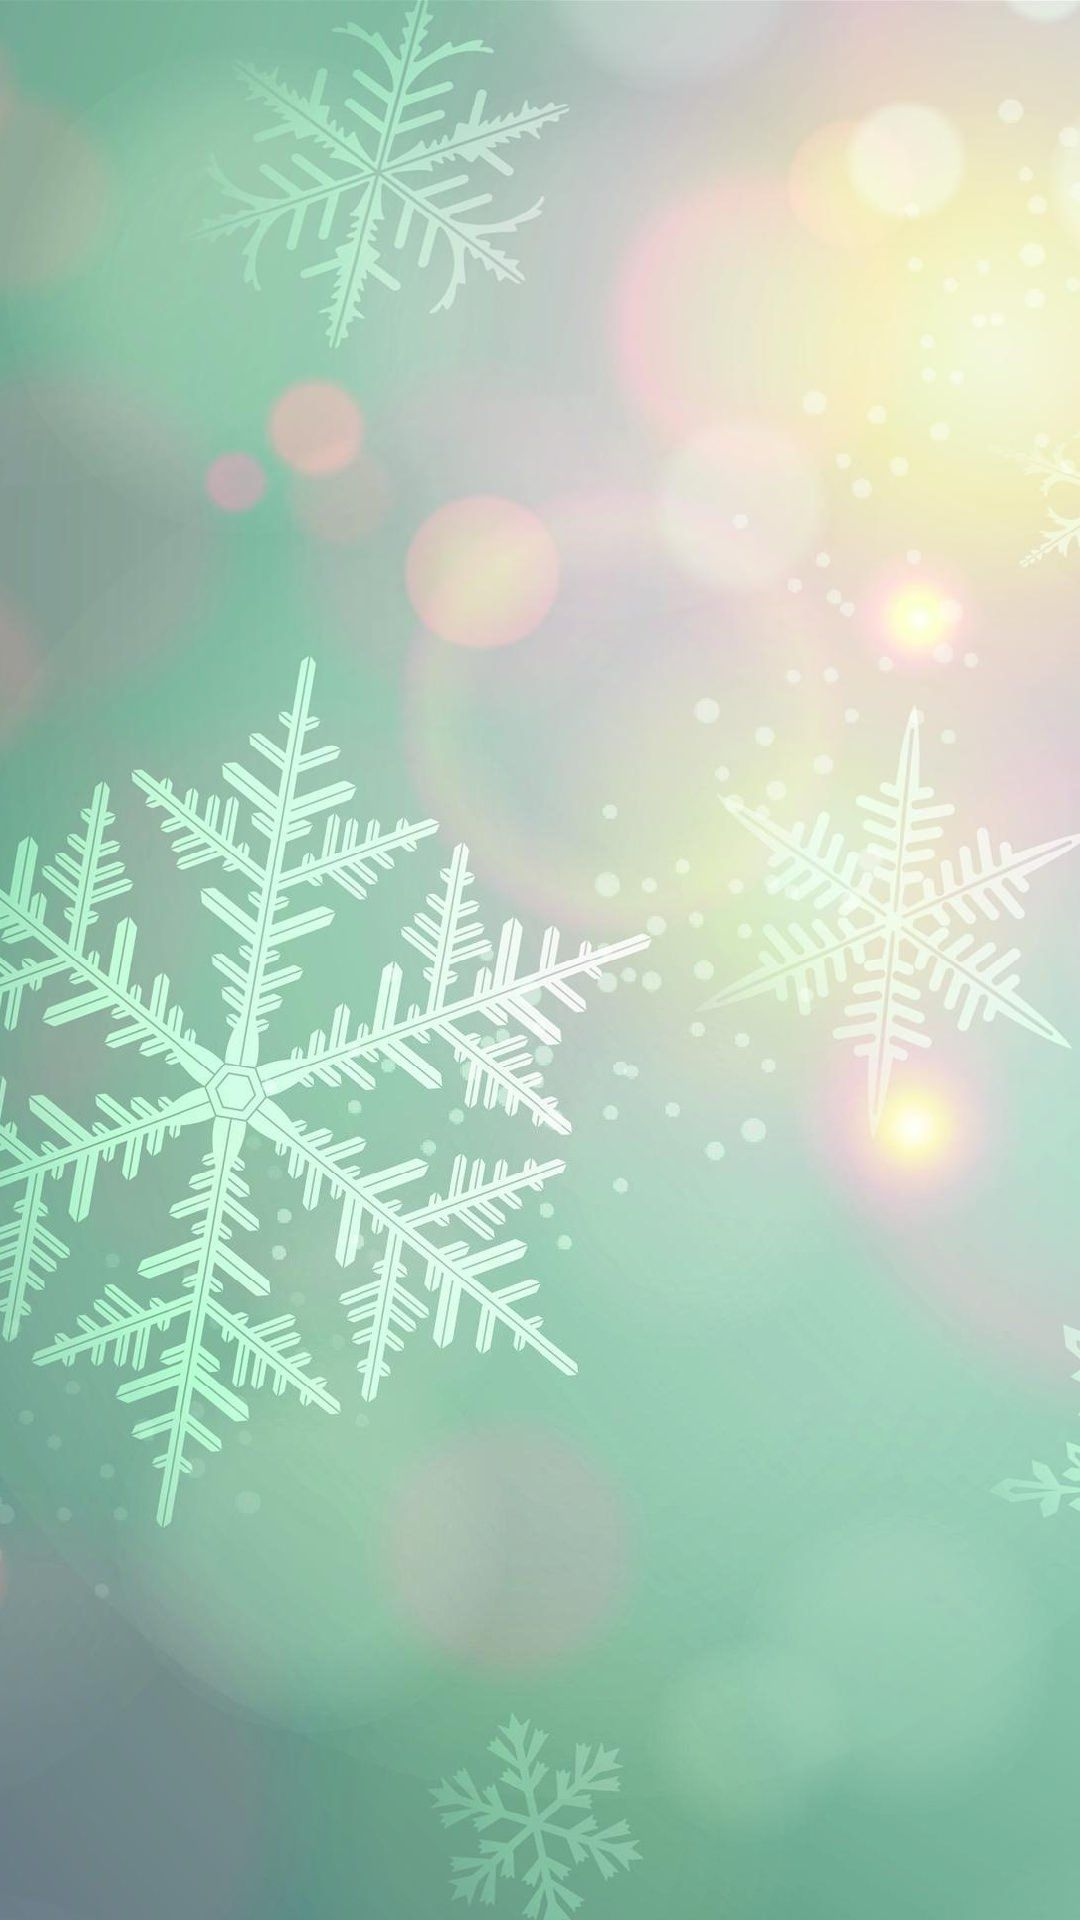 Snow Crystal Snowflake Wallpaper Cute Christmas Wallpaper Crystal Iphone Wallpaper